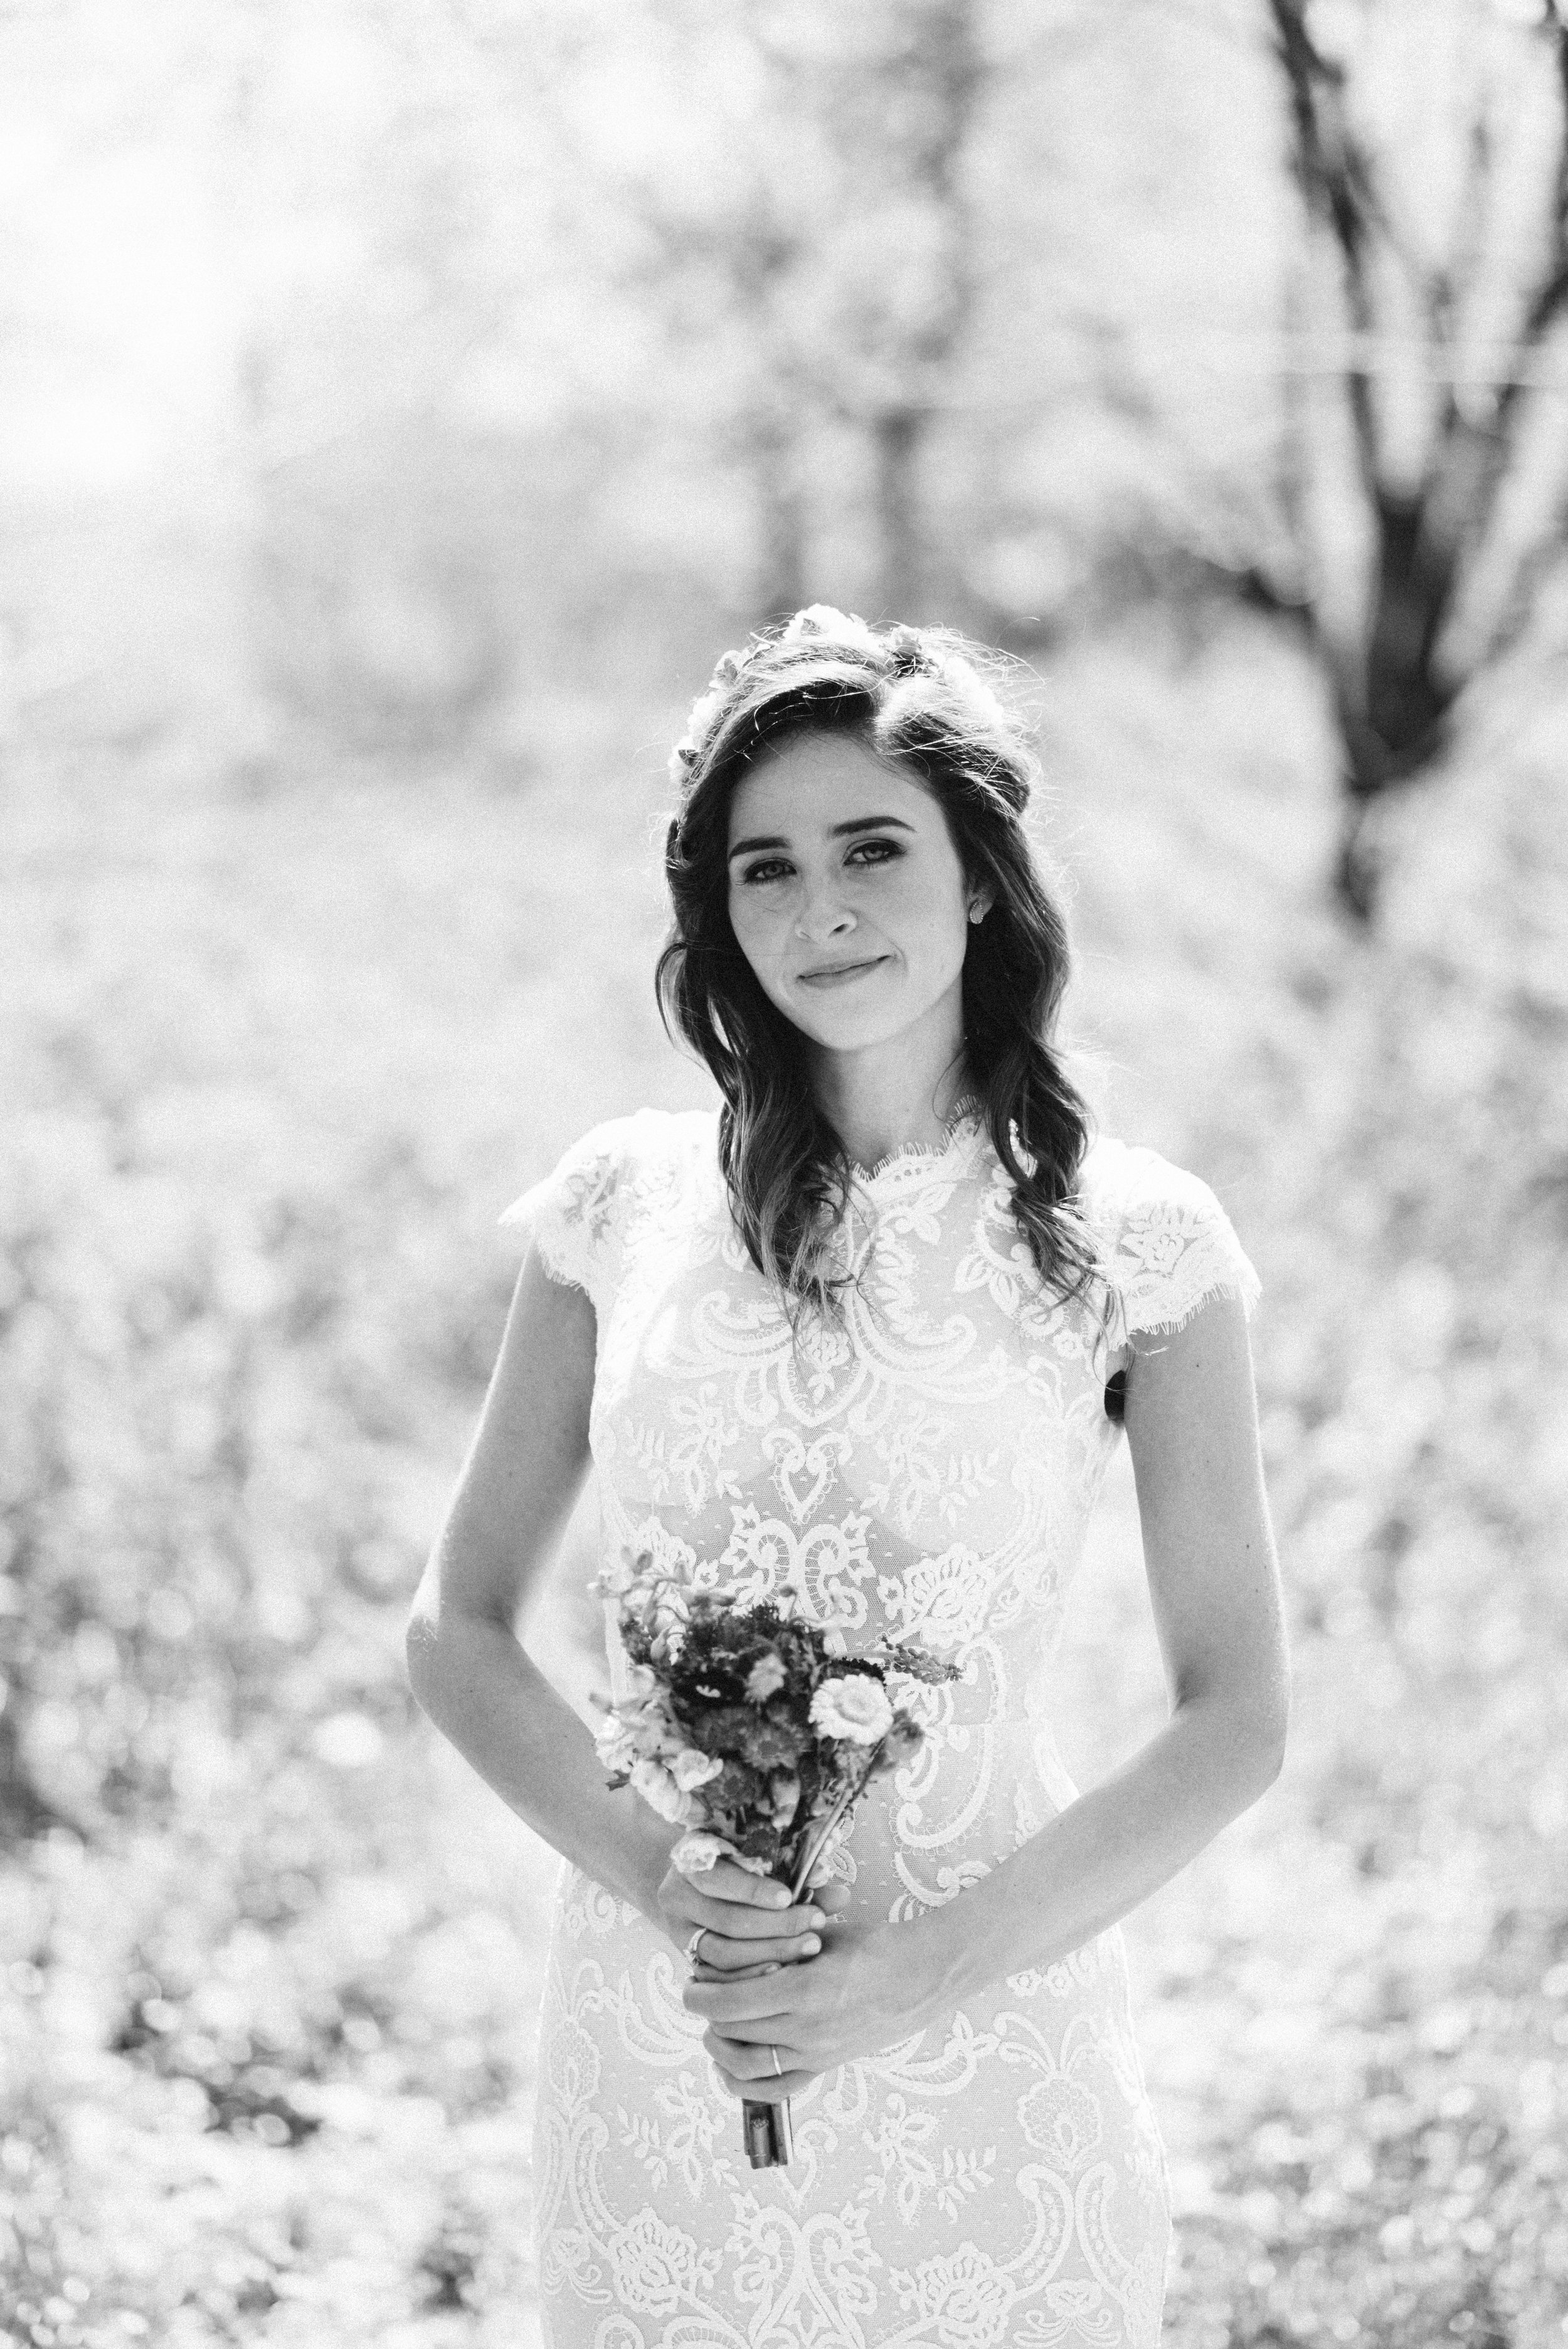 Spring Outdoor Wedding, Park, Baltimore Wedding Photographer, DIY, Classic, Upcycled, Garden Party, Romantic, Portrait of Bride, BHLDN Dress, Black and White Photo, Glamquad Hair